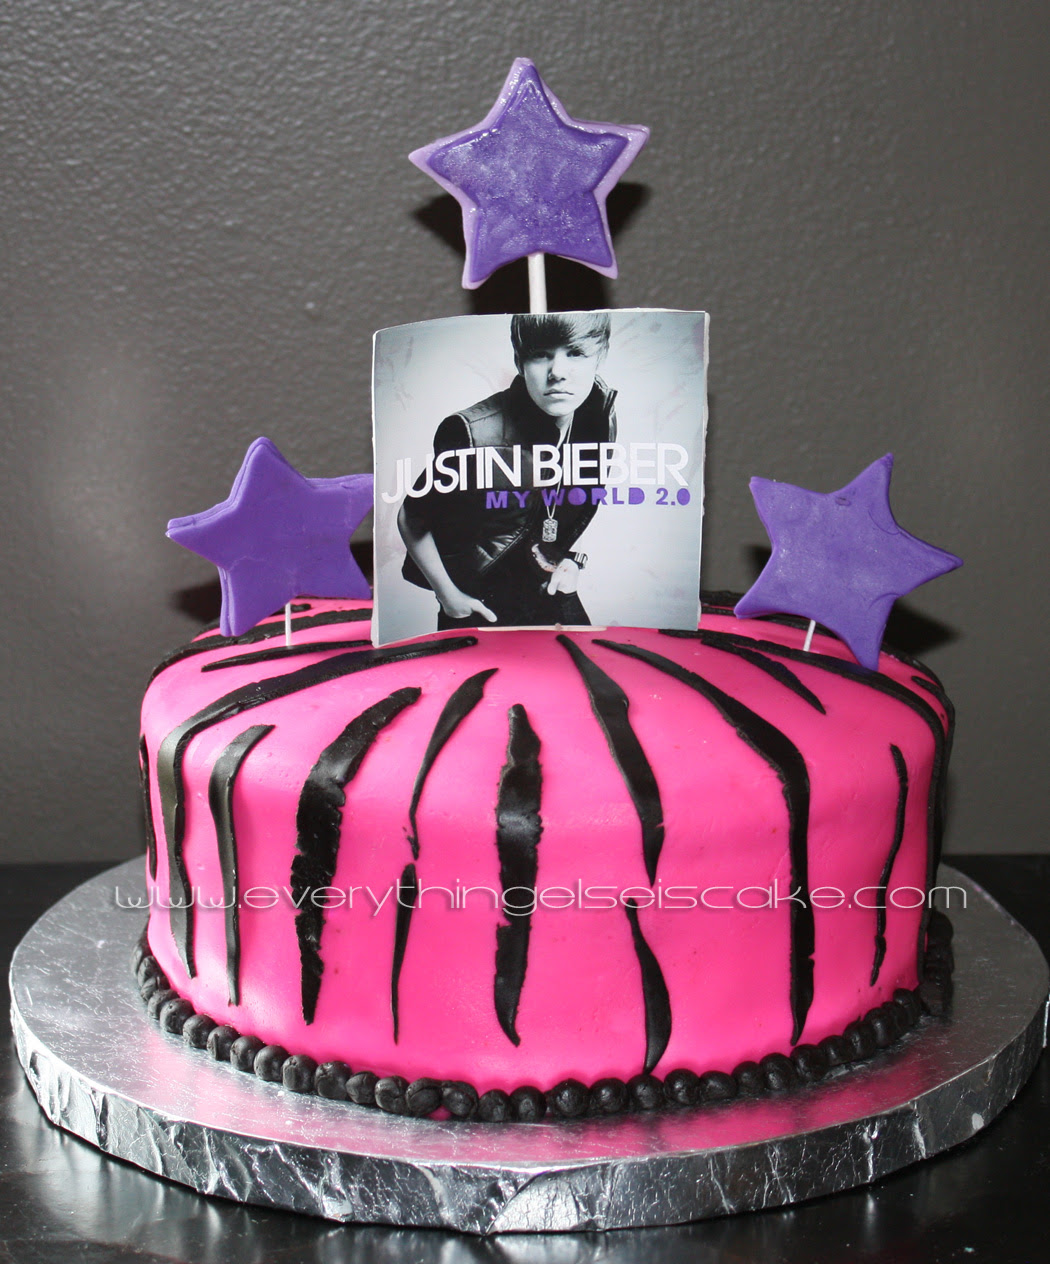 15 Unconventional Knowledge About Justin Bieber Birthday Cake That